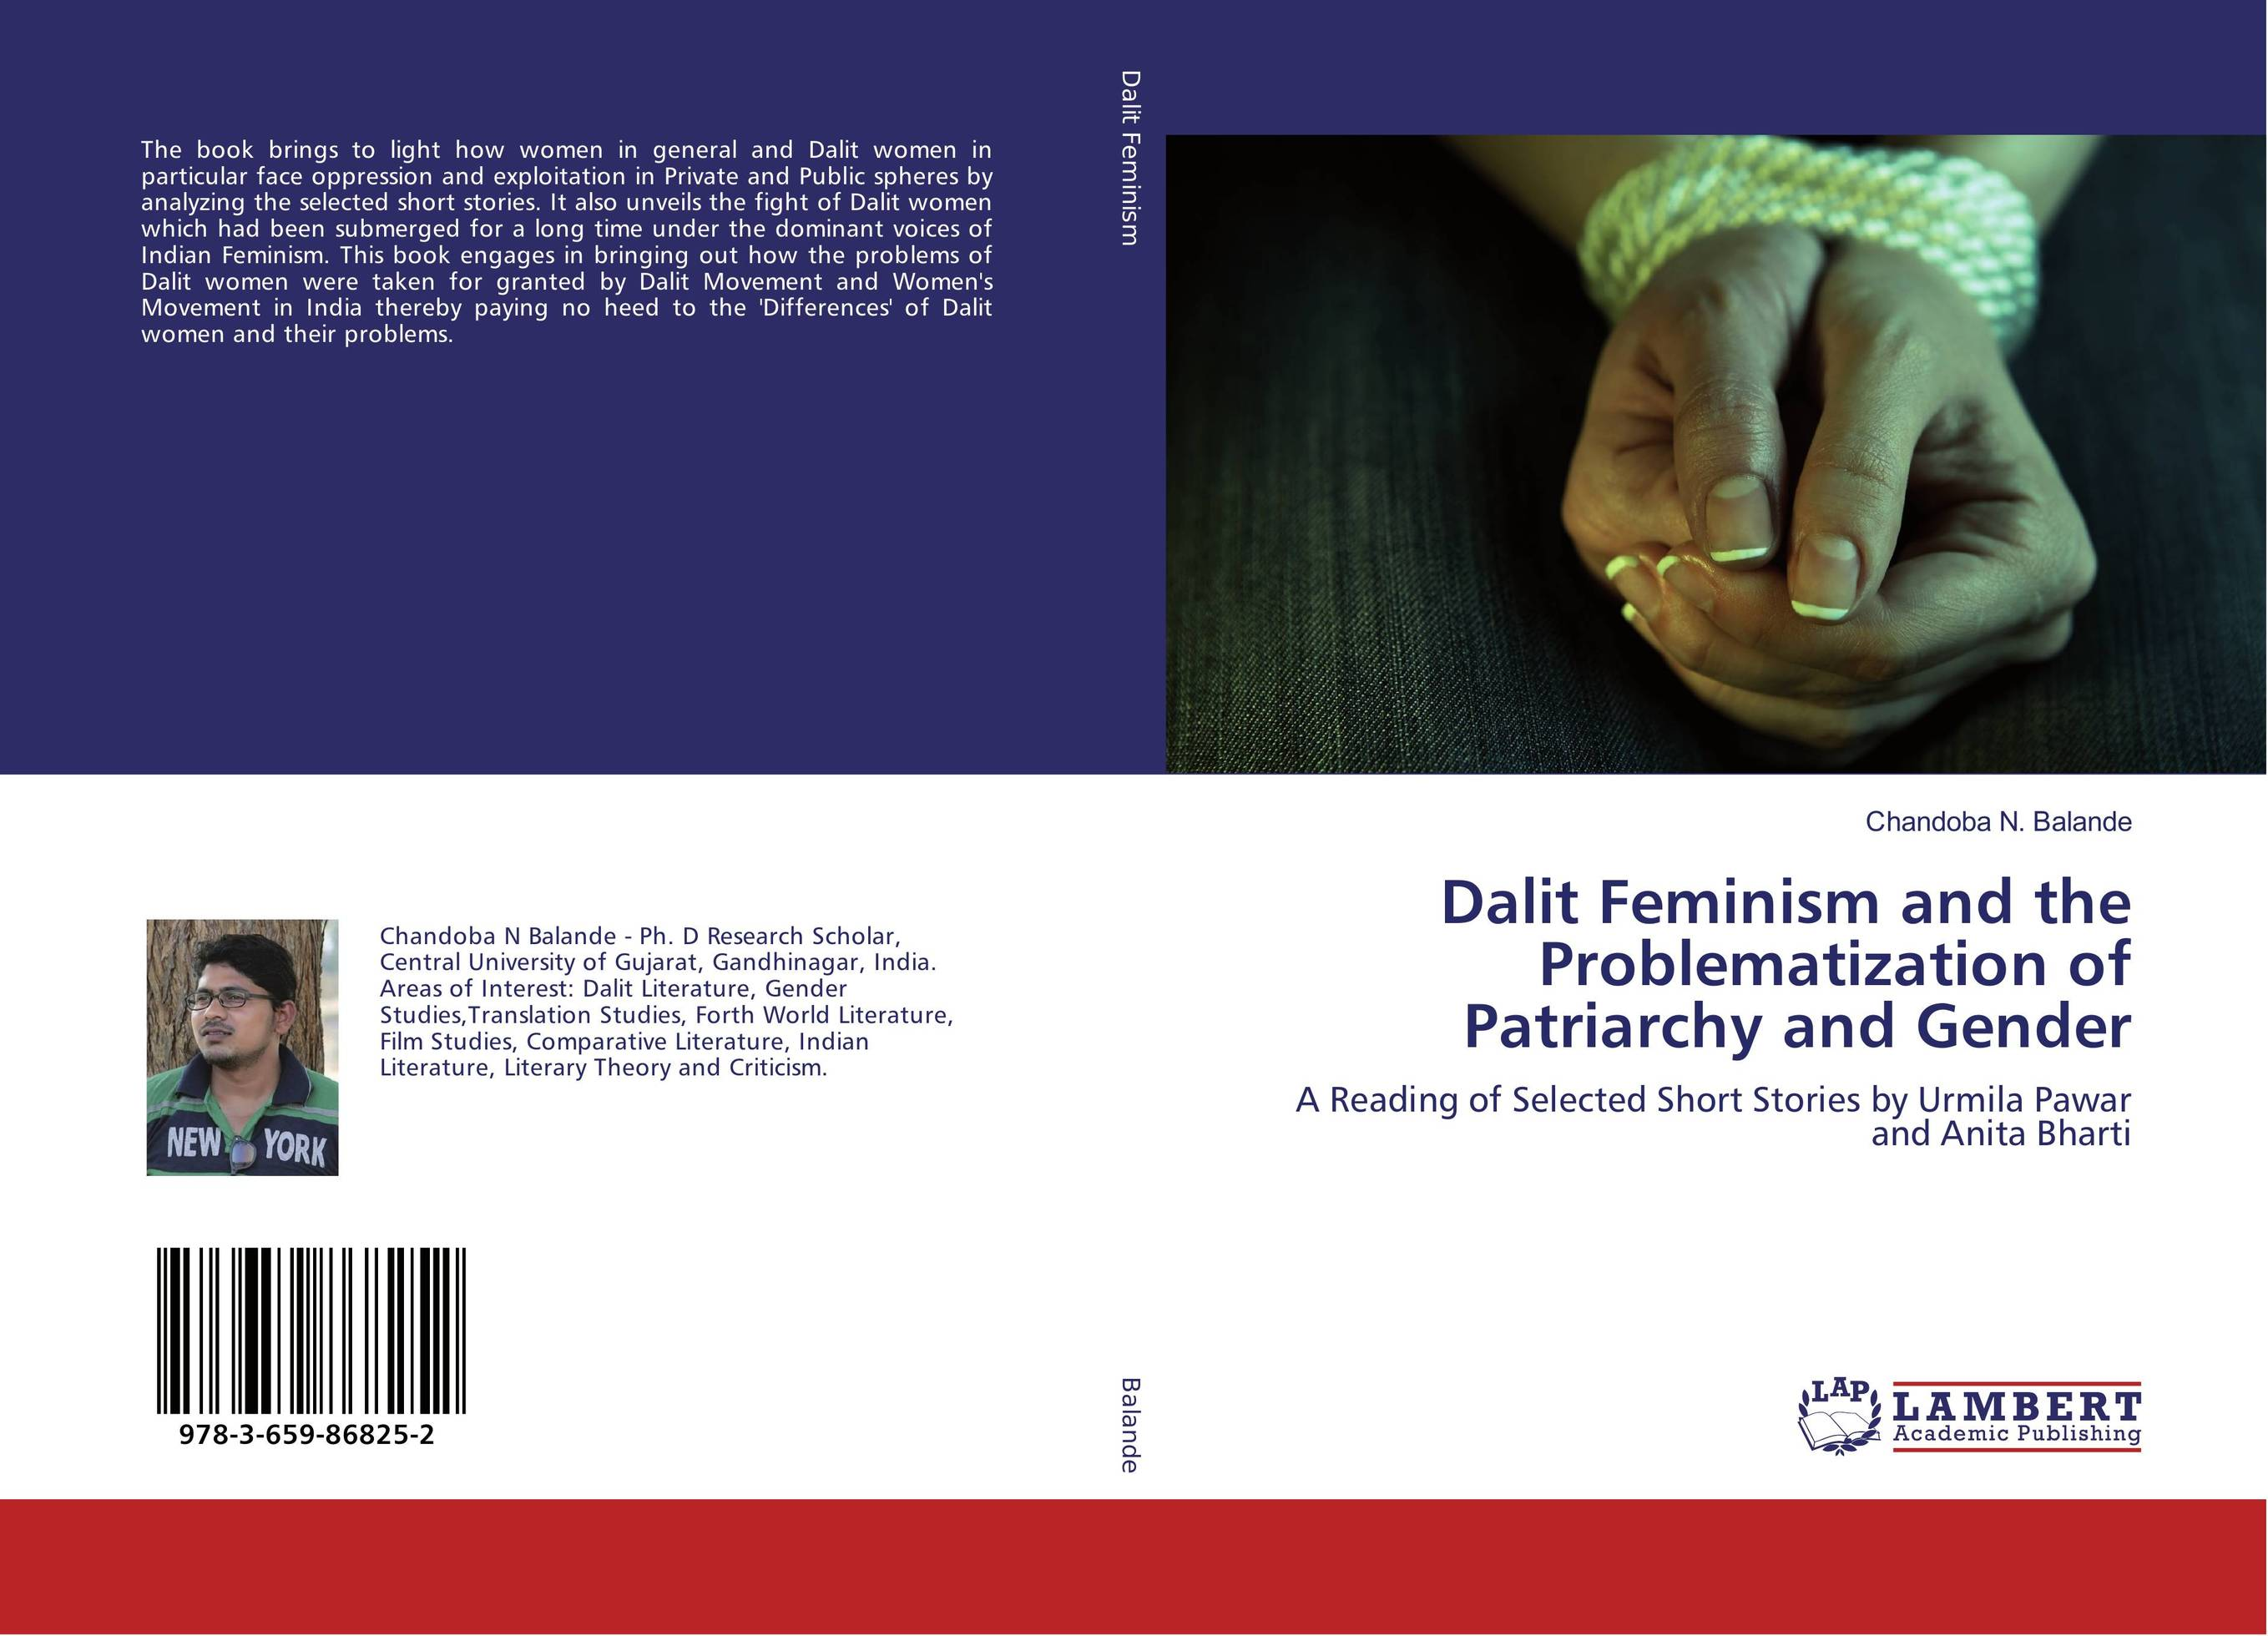 Dalit Feminism and the Problematization of Patriarchy and Gender the awakening and selected stories of kate chopin